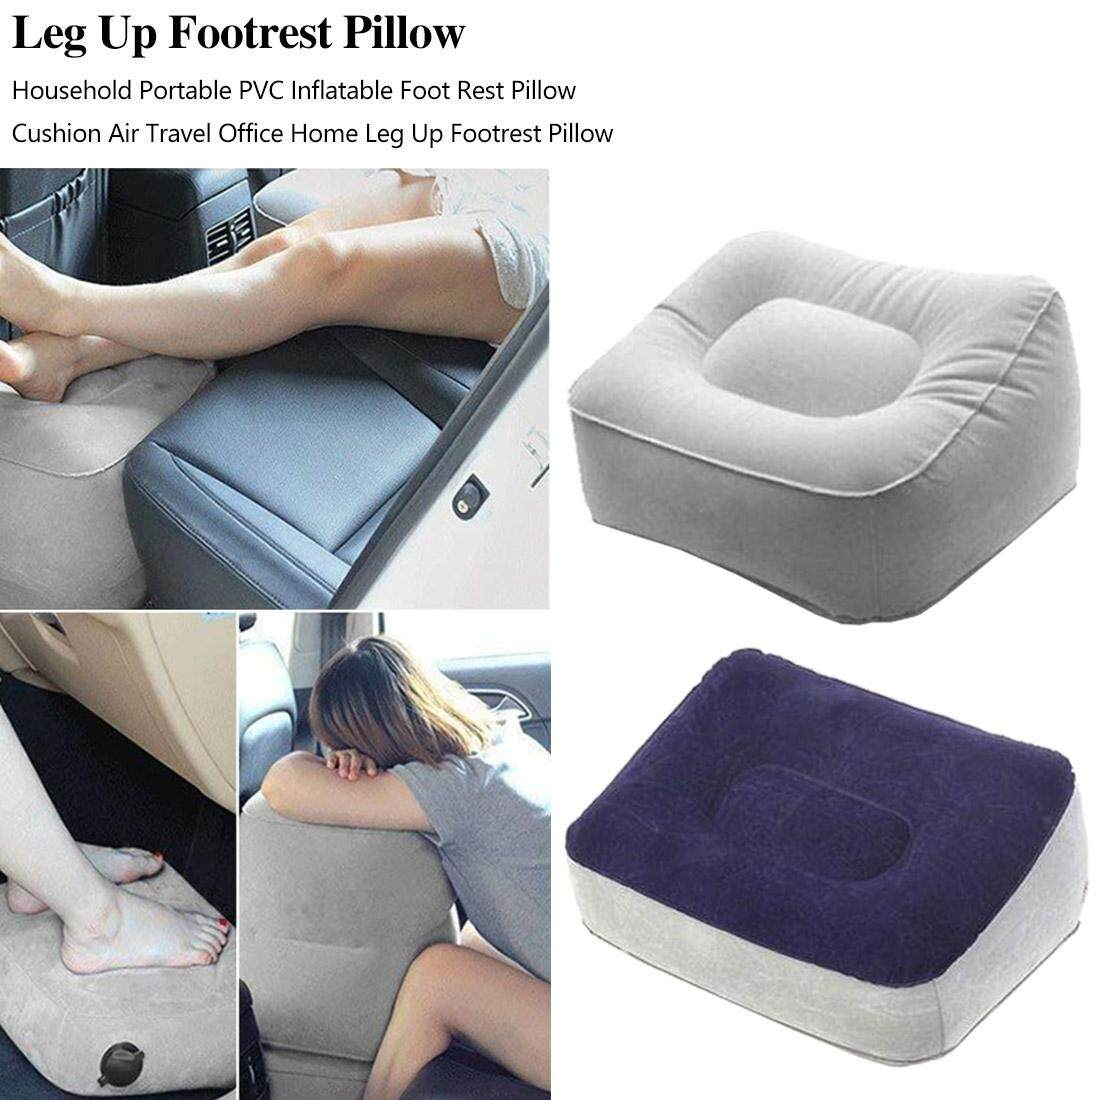 Soft Inflatable Foot Rest Pillow Footrest Relax Cushion Pad for Travel Home Car